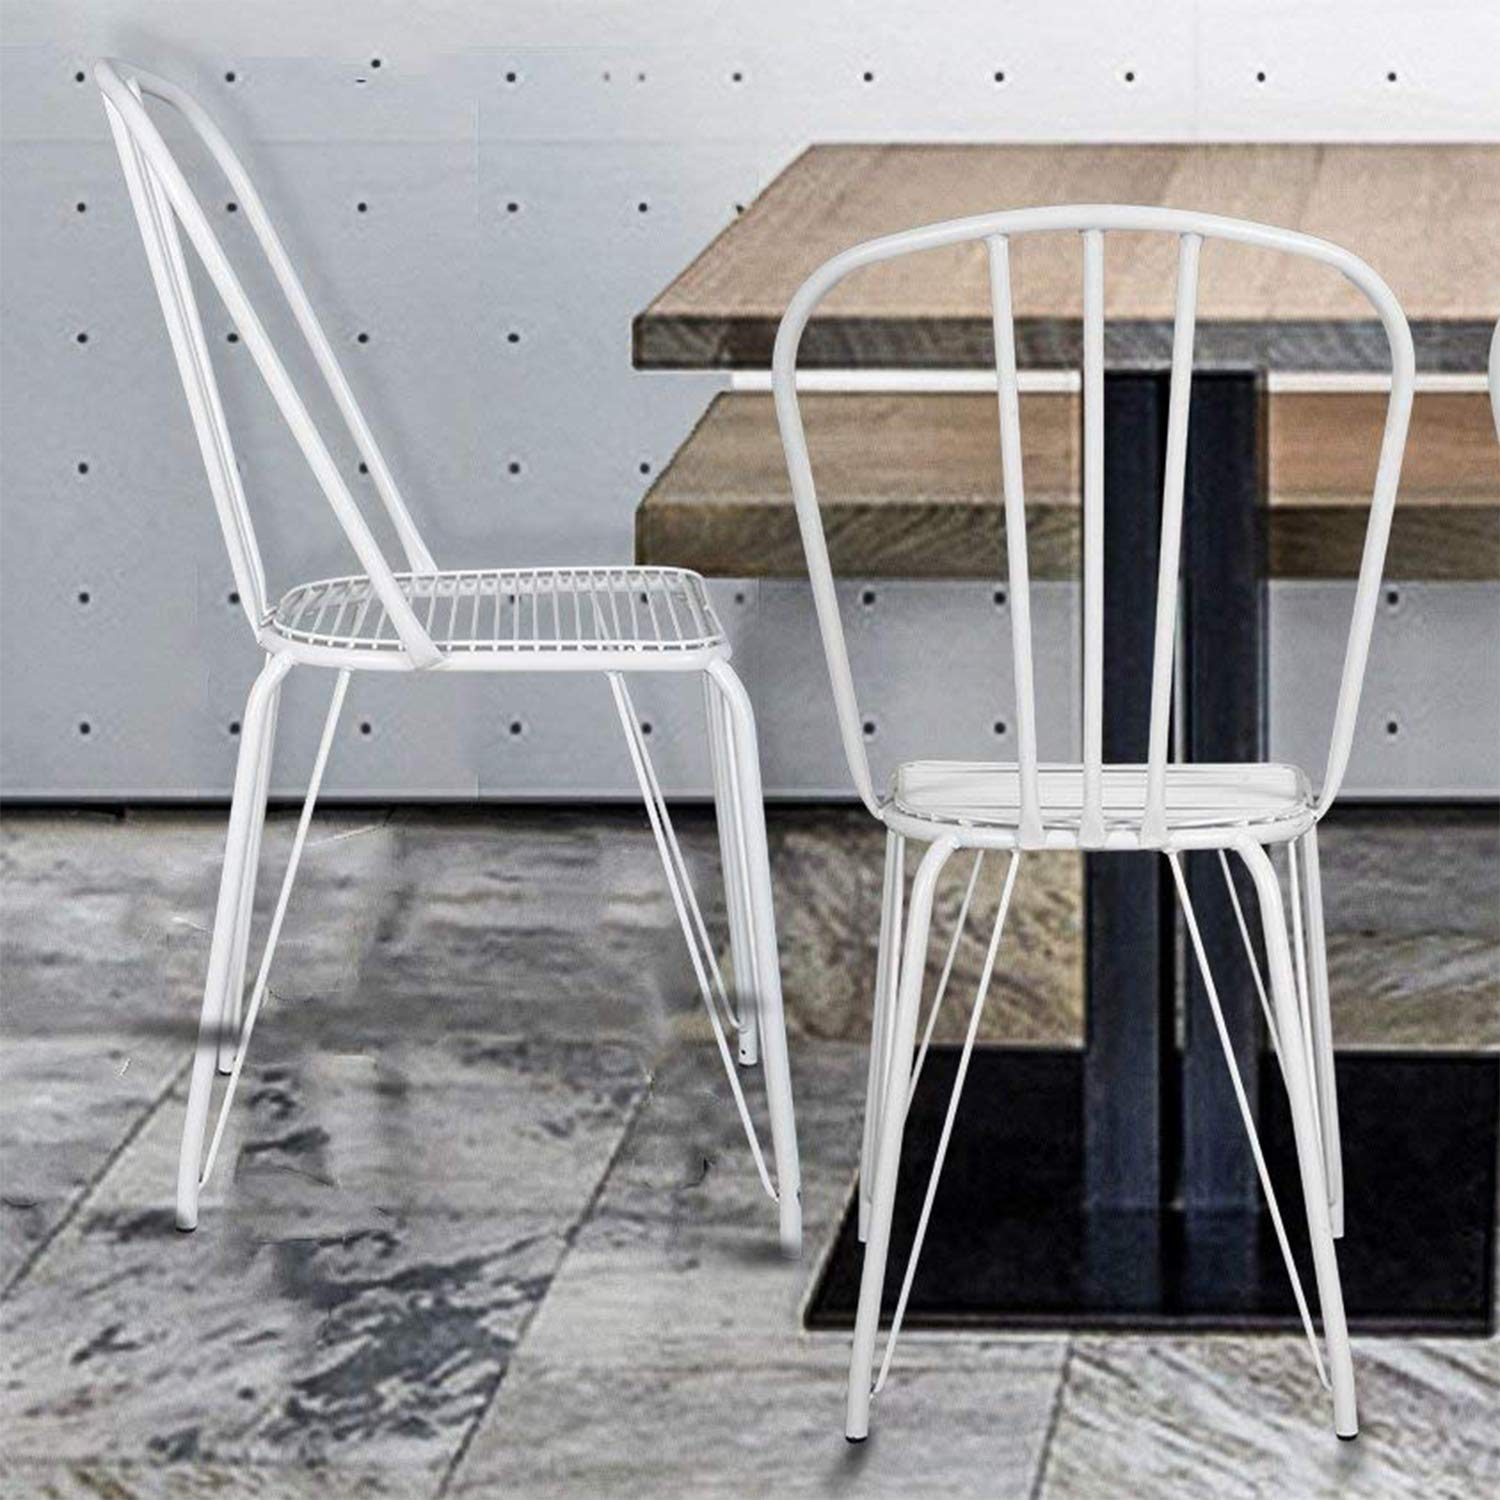 Merax Metal Dining Chairs 18 Inches High Back Dining Side Chairs,Stackable Stencil Wire Seat Chair for Bistro/Cafe/Kitchen/Dining Room, White Indoor-Outdoor Metal Chair Set of 2